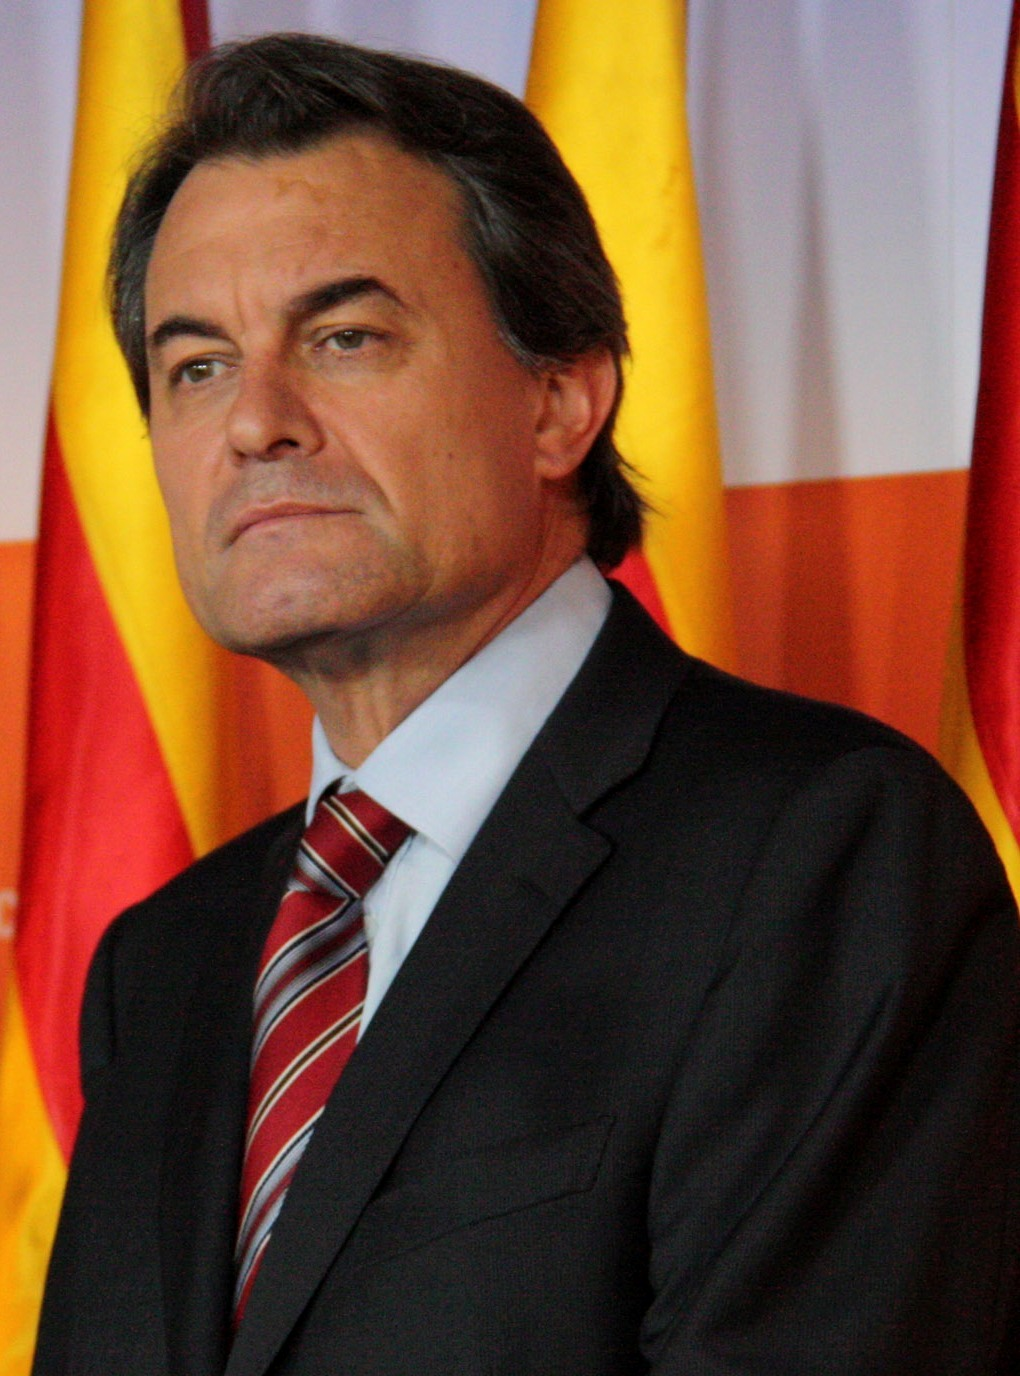 http://upload.wikimedia.org/wikipedia/commons/2/21/PresidentMas.jpg